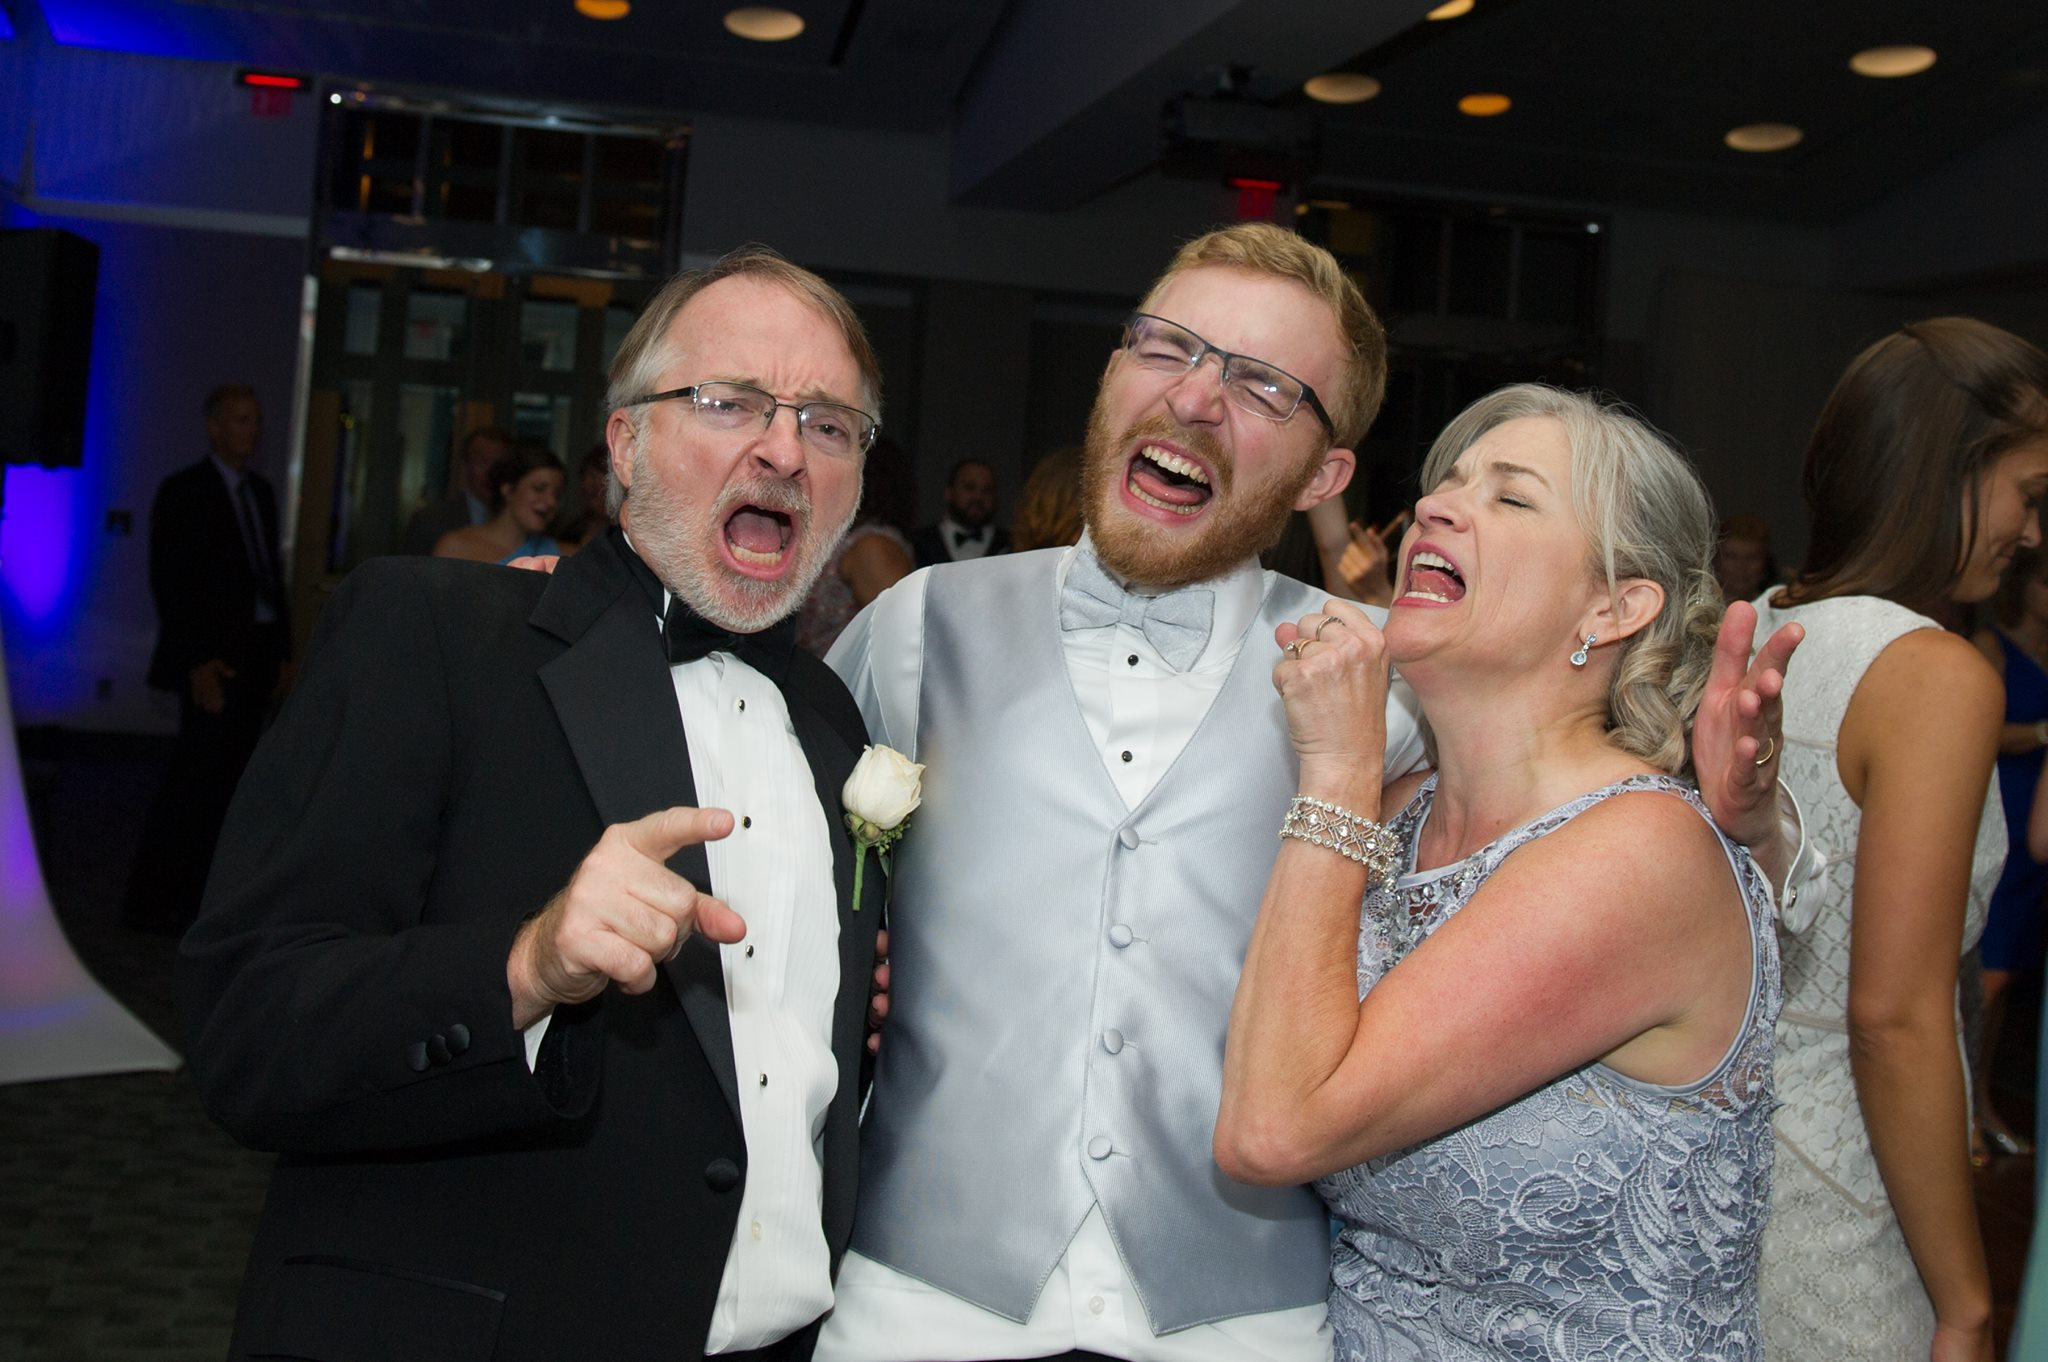 Dancing at his wedding with his parents...to a Journey song?